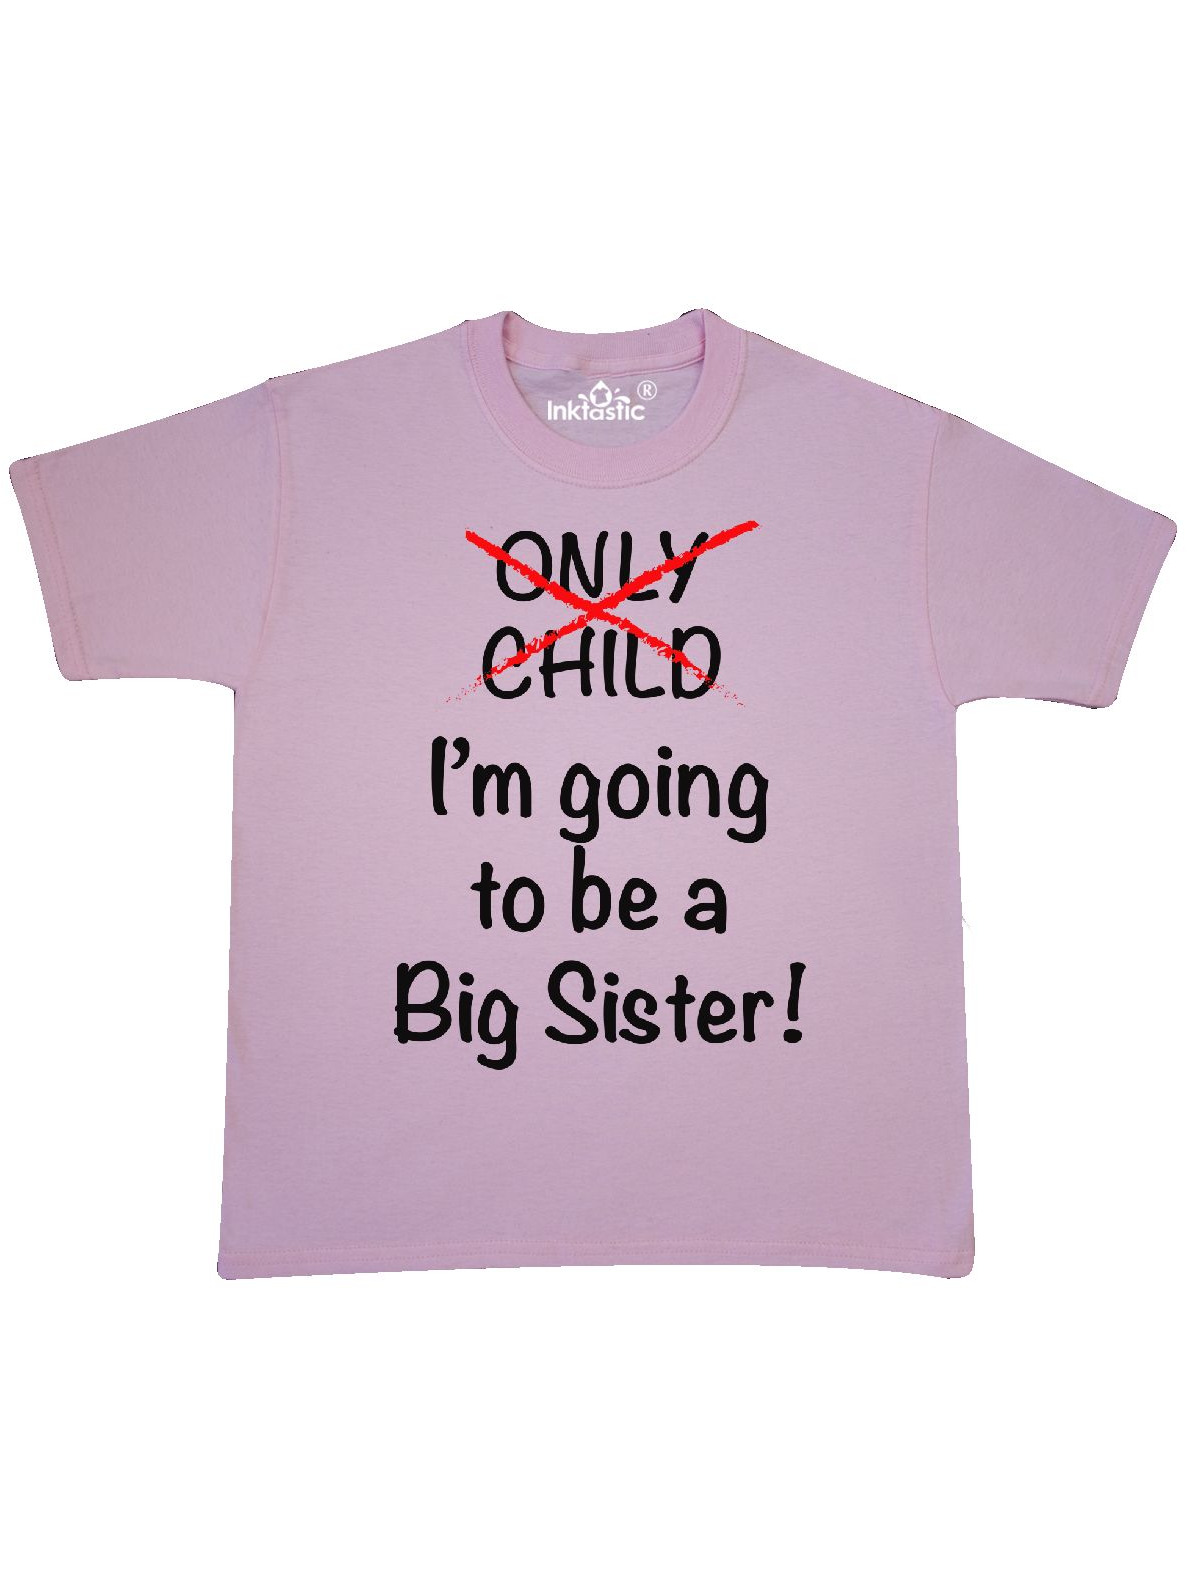 I'm going to be a Big Sister! Youth T-Shirt